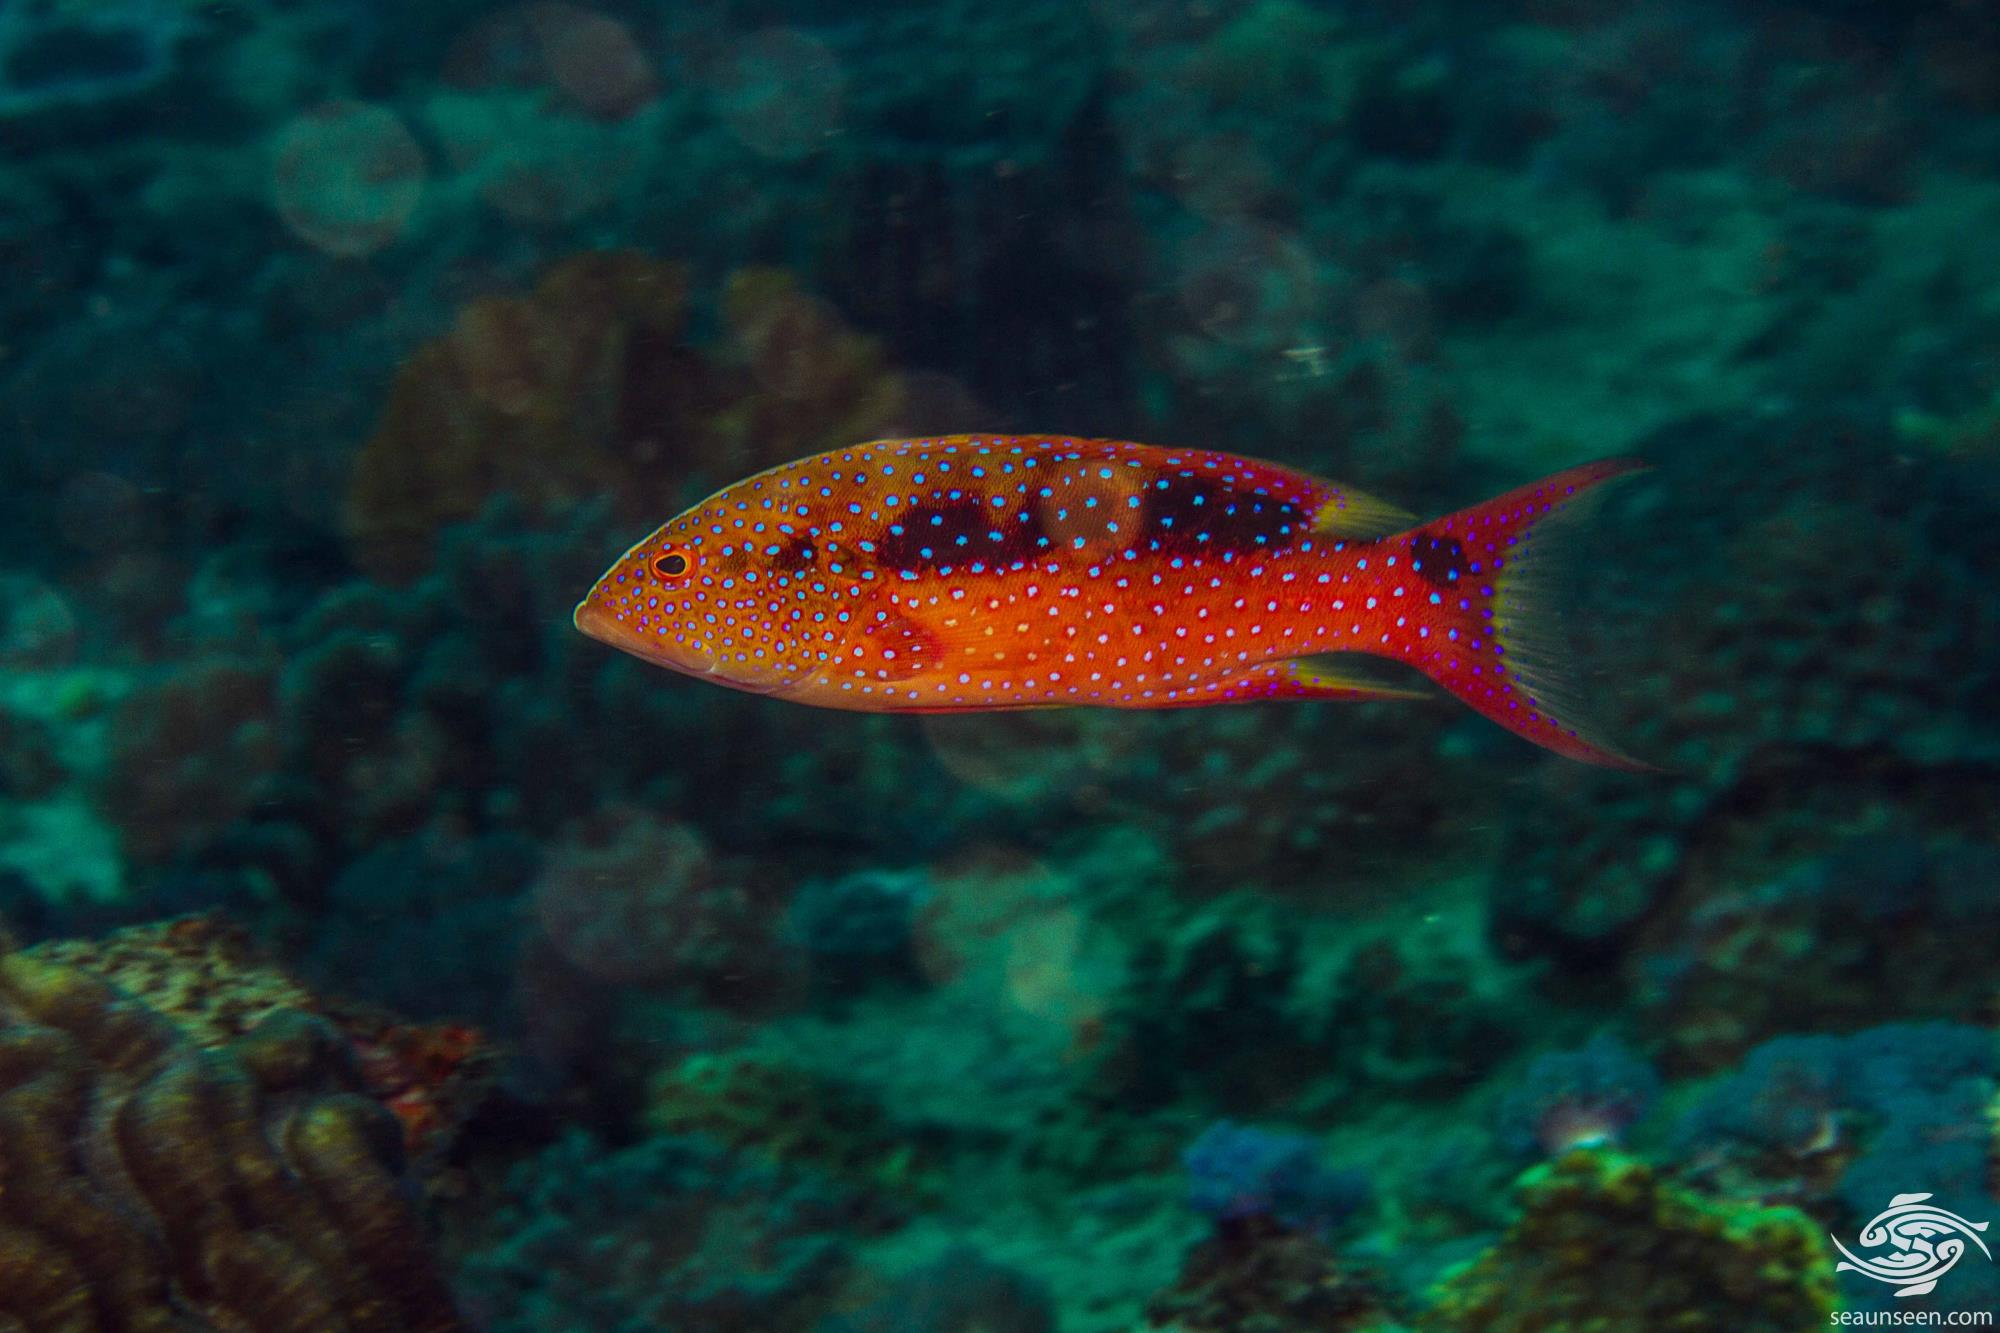 Mid size Yellow-edged Lyretail Grouper (Variola louti) is also known as the the Lyretail Grouper, Common Lyre-tail Cod, Lunar-tail Cod and Lunar-tailed Rock-cod